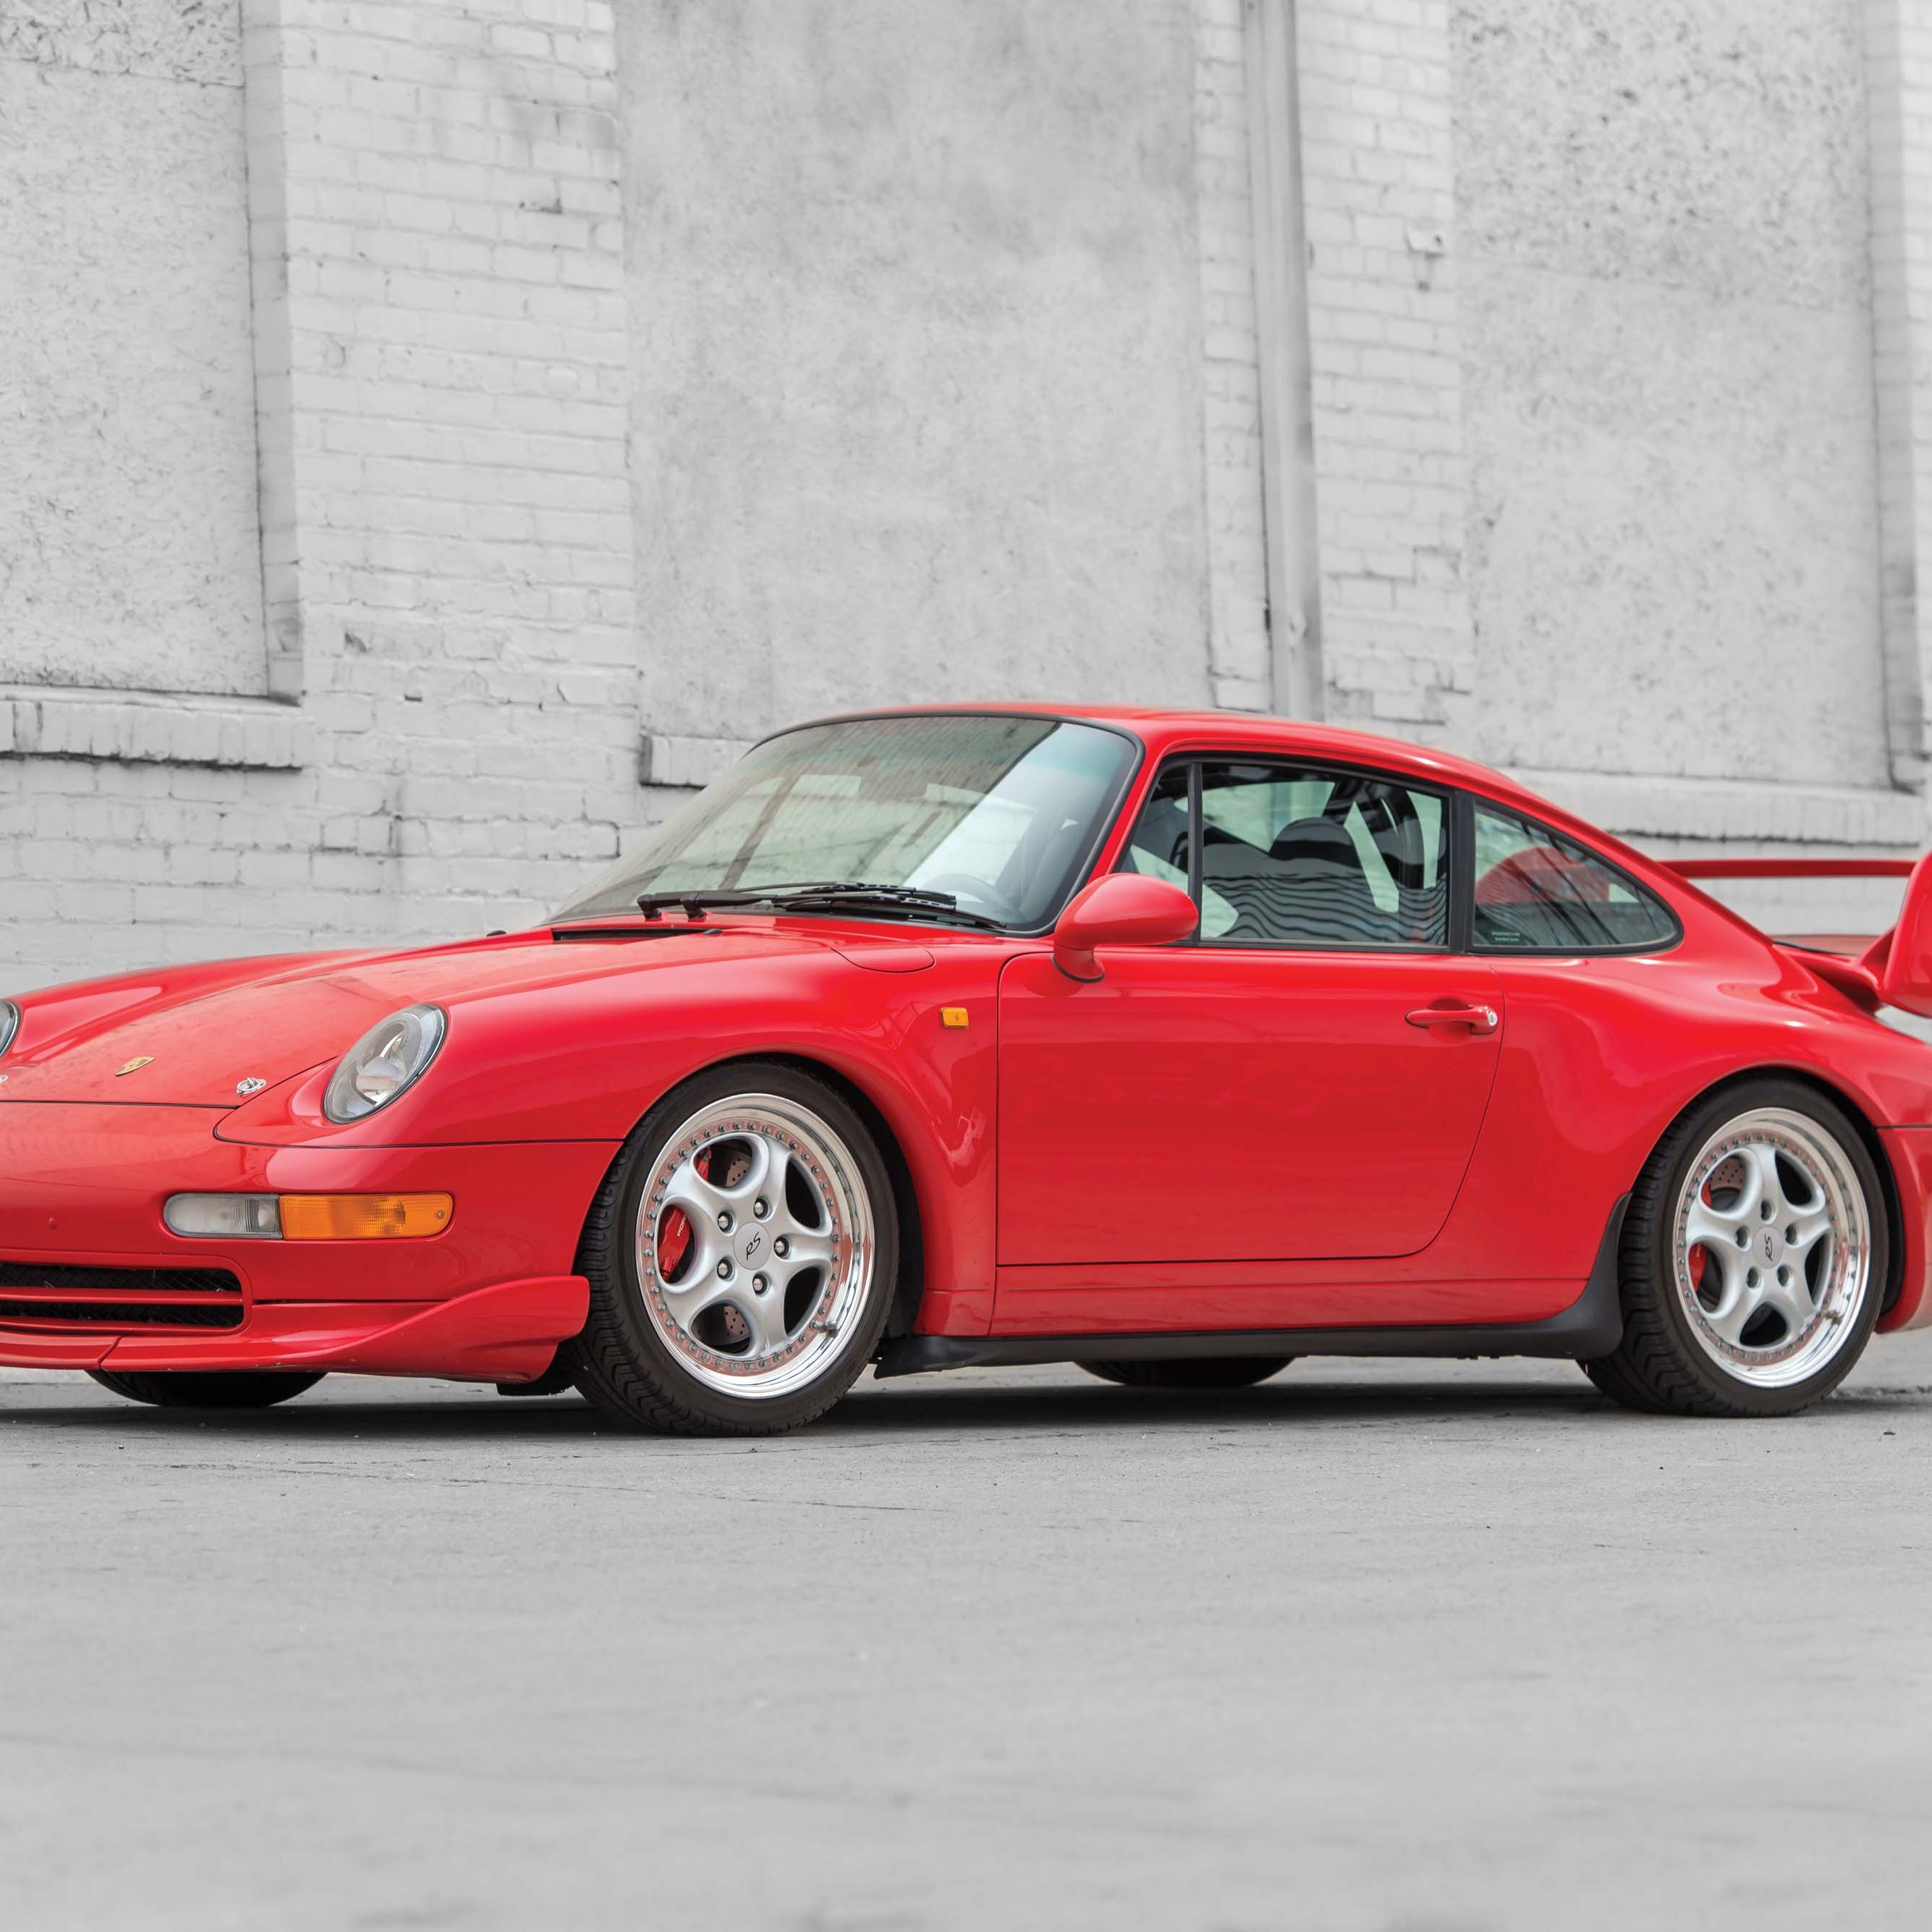 <p>In a sense, this is the ultimate naturally-aspirated, air-cooled 911. The 993 was the last hurrah before wasser-cooling took over. The 3.8 RS represents the most extreme evolution of the 993, save turbocharging.</p>